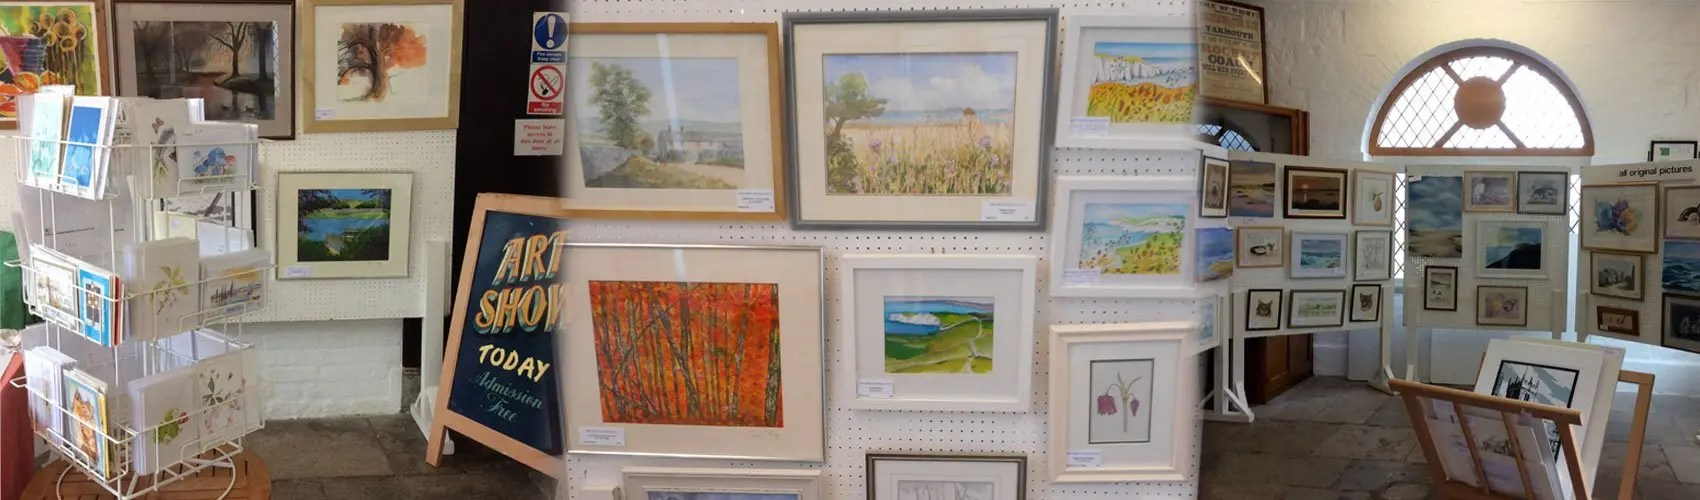 West Wight Painting Circle Exhibitions held at Yarmouth Town Hall